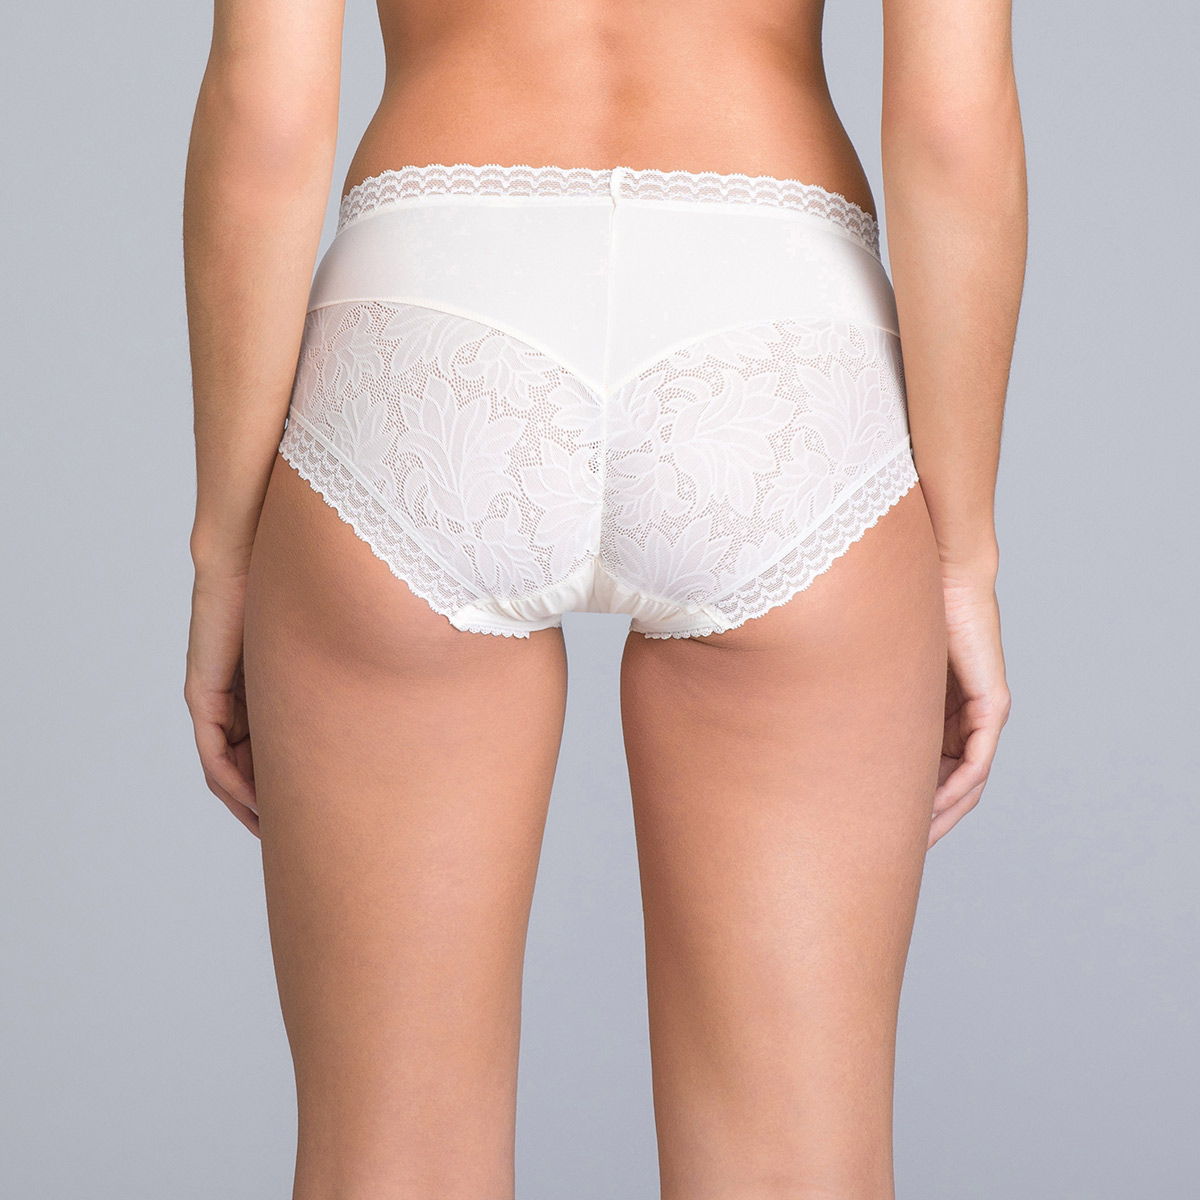 Midi Knickers in Antique White Lace - Invisible Elegance - PLAYTEX